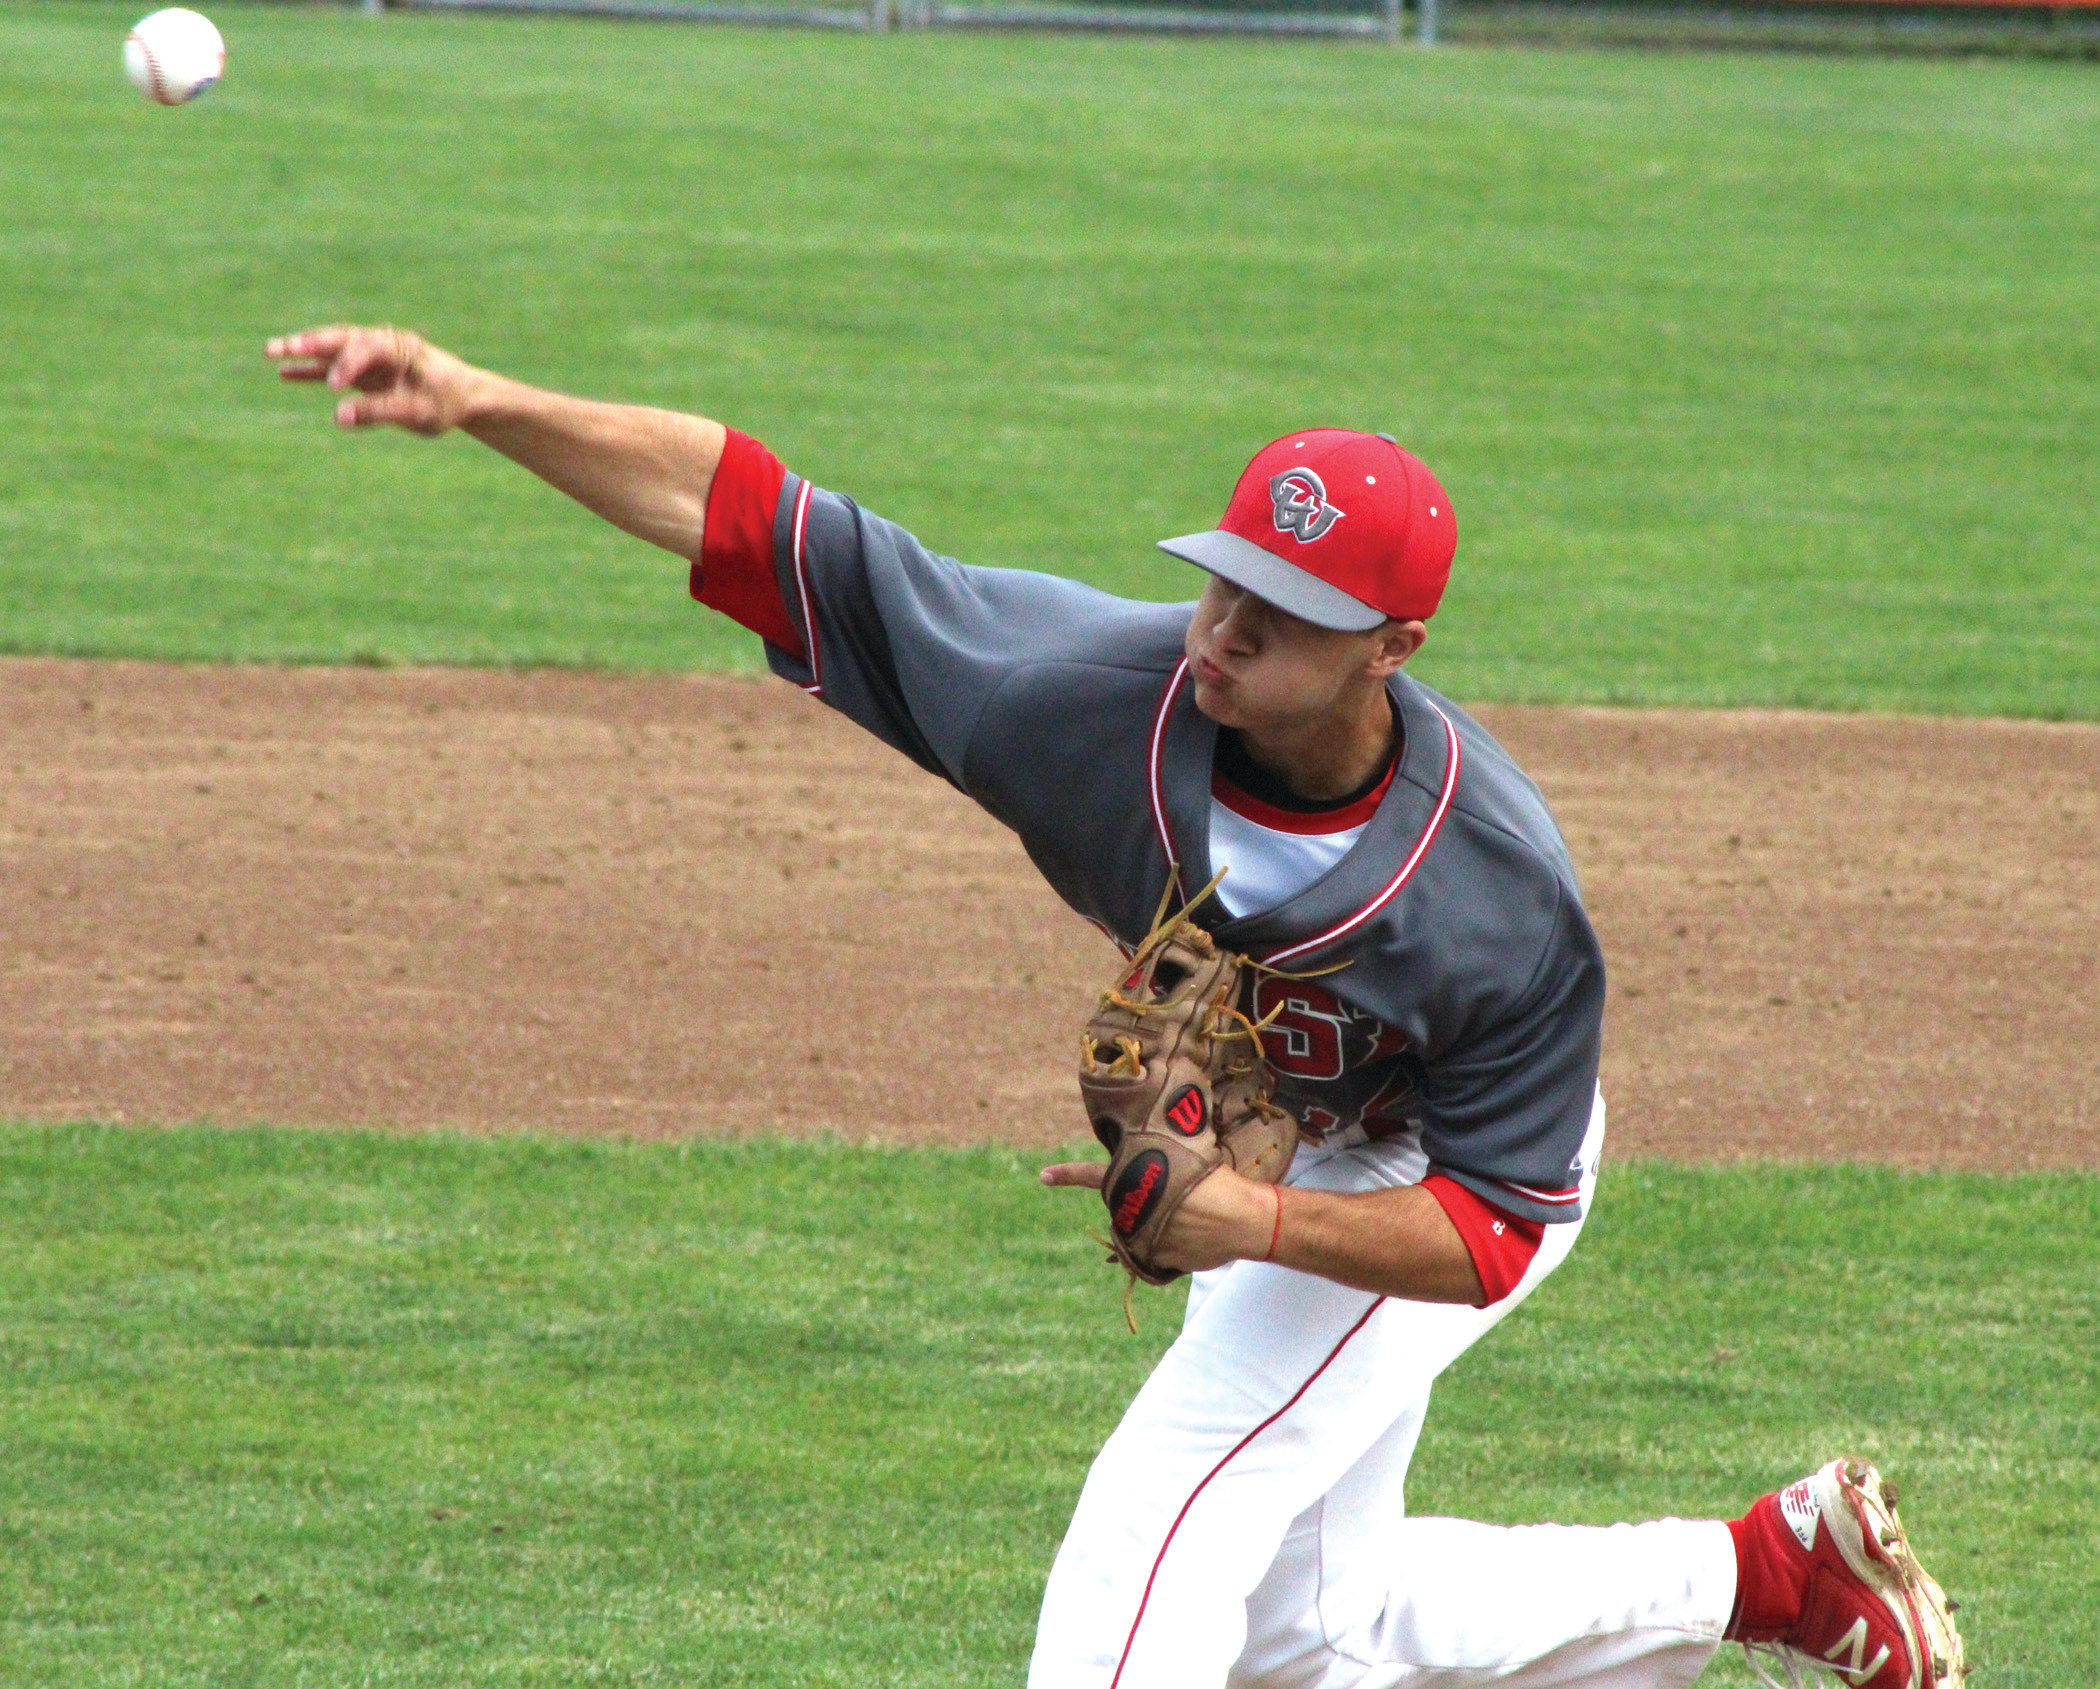 IN COMMAND: Steve Rocchio earned the Cy Young award for Division I-A last season after posting an ERA of 1.50.